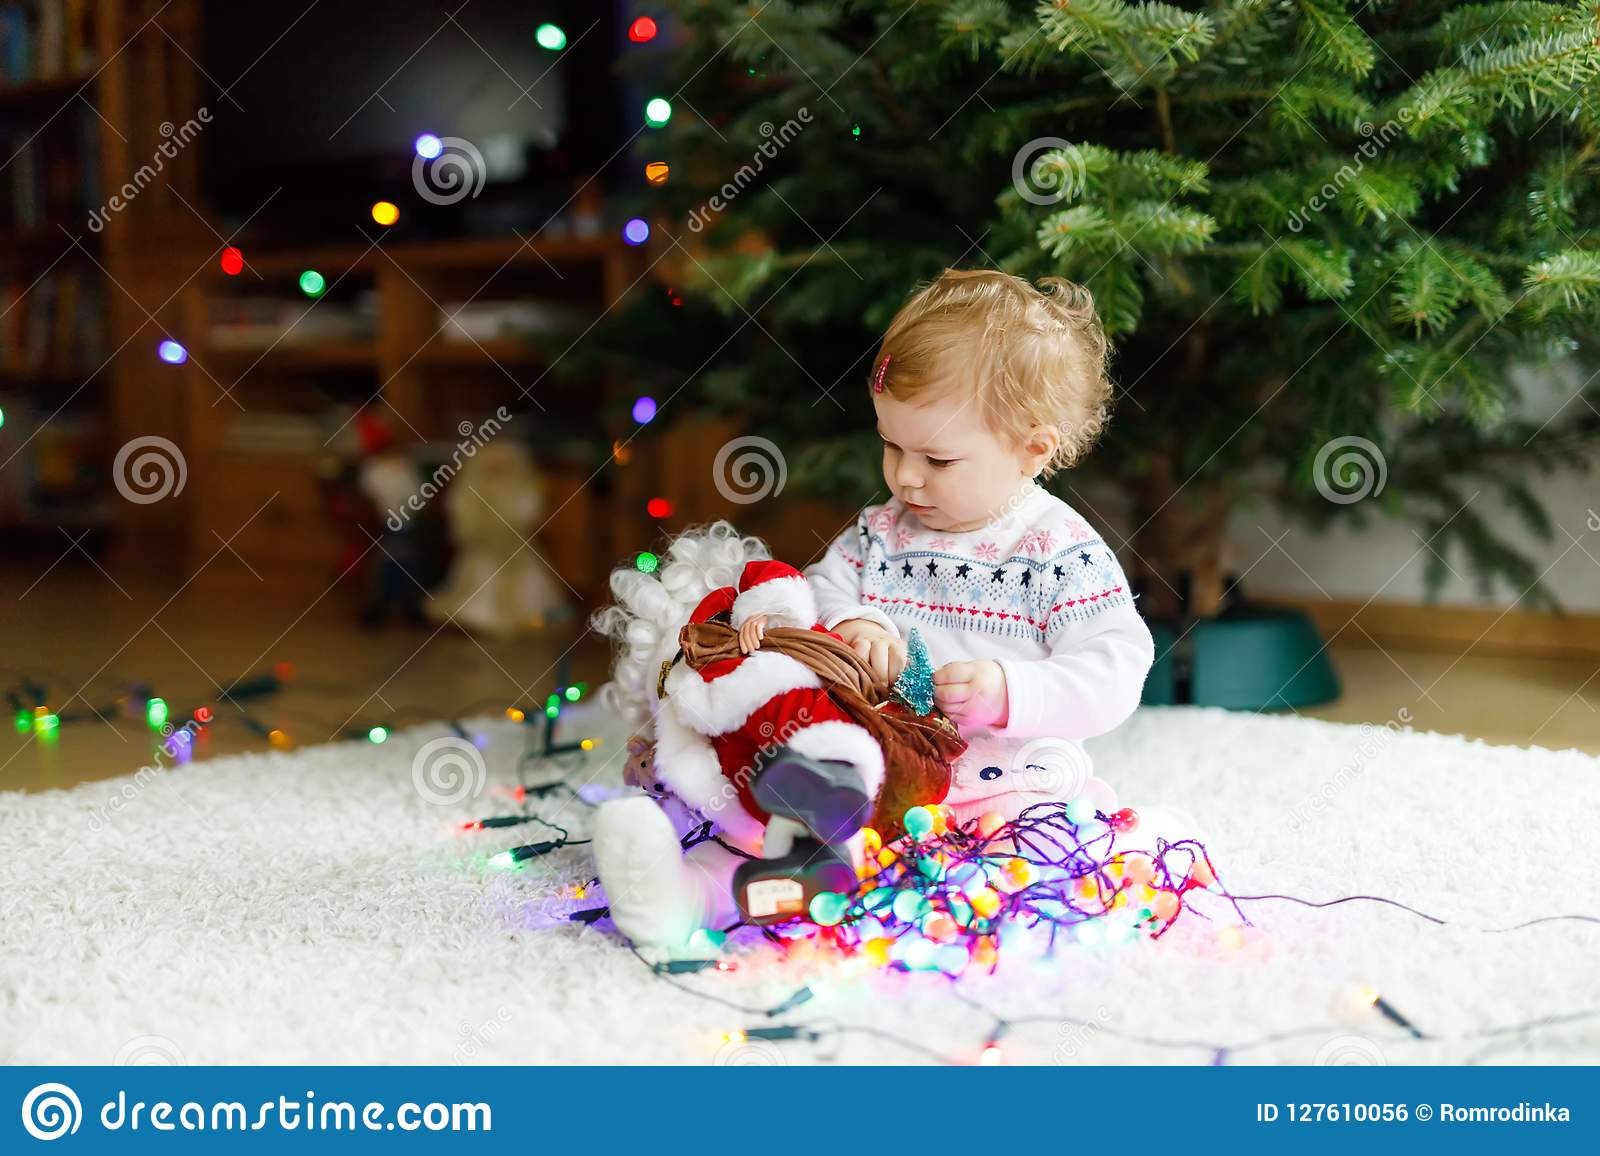 8ef4774cc Adorable baby girl holding colorful lights garland and toy Santa Claus in  cute hands.